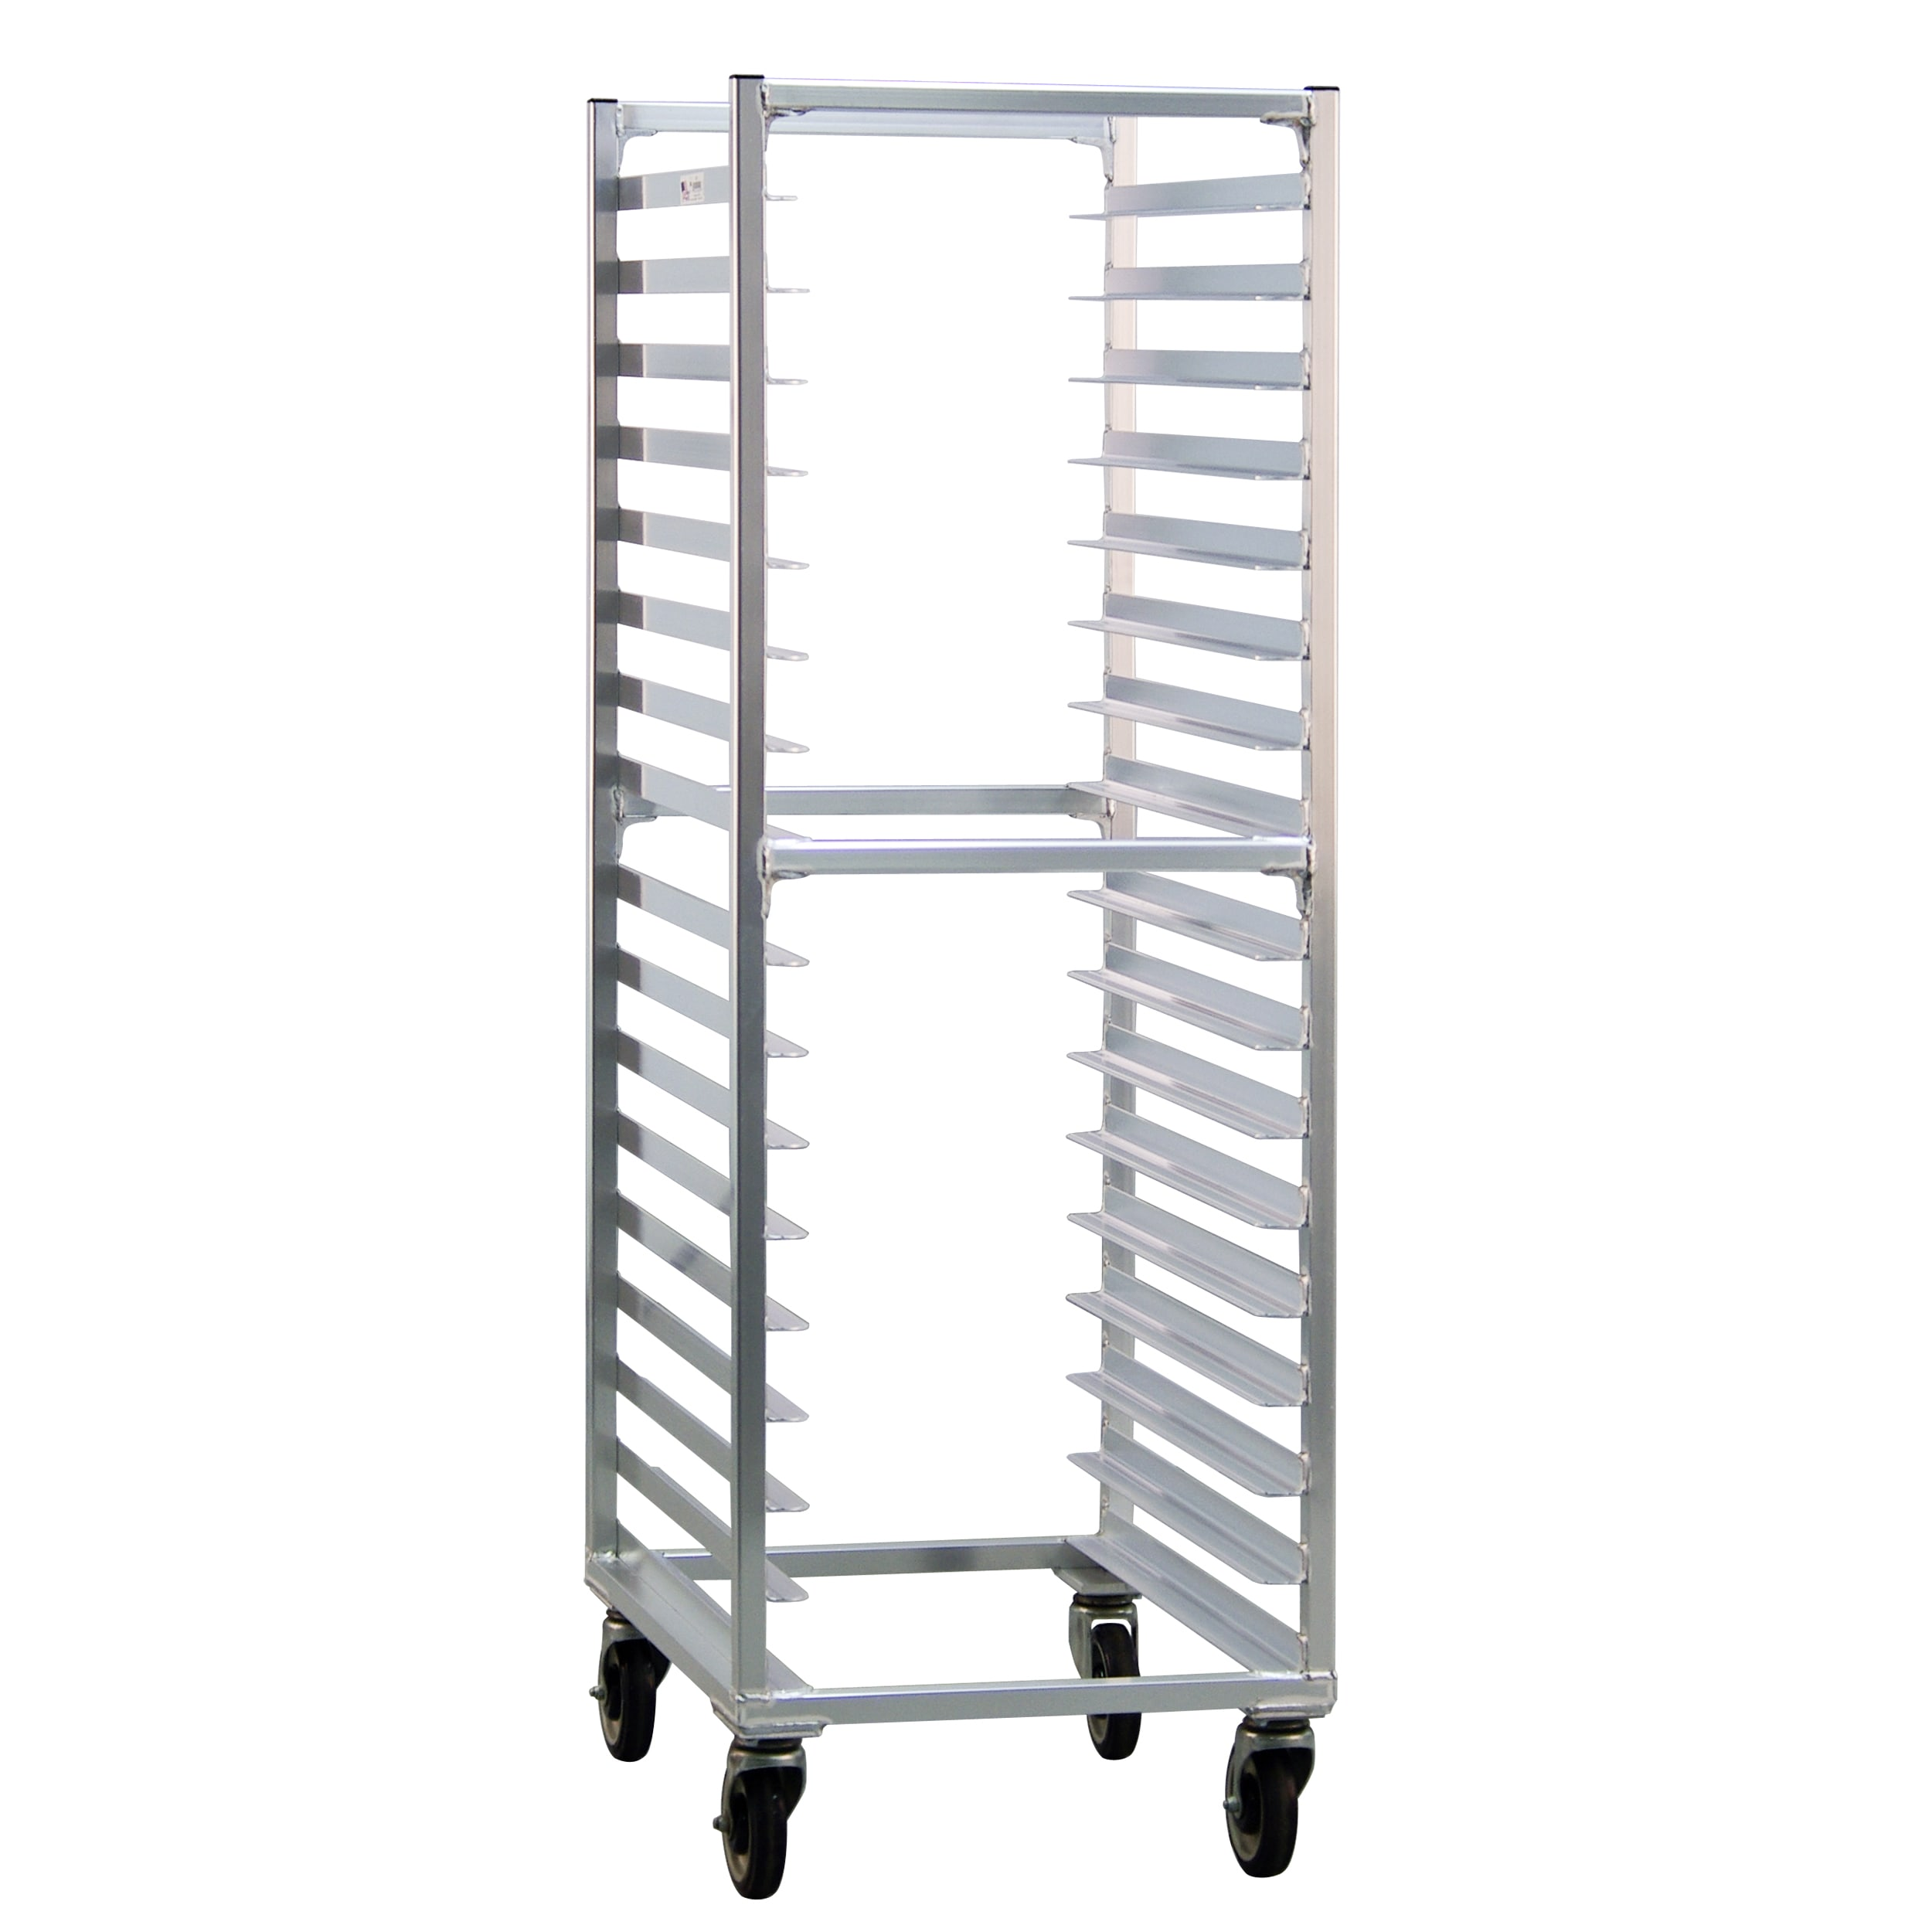 New Age 1361 20.38W 17 Bun Pan Rack w/ 3 Bottom Load Slides